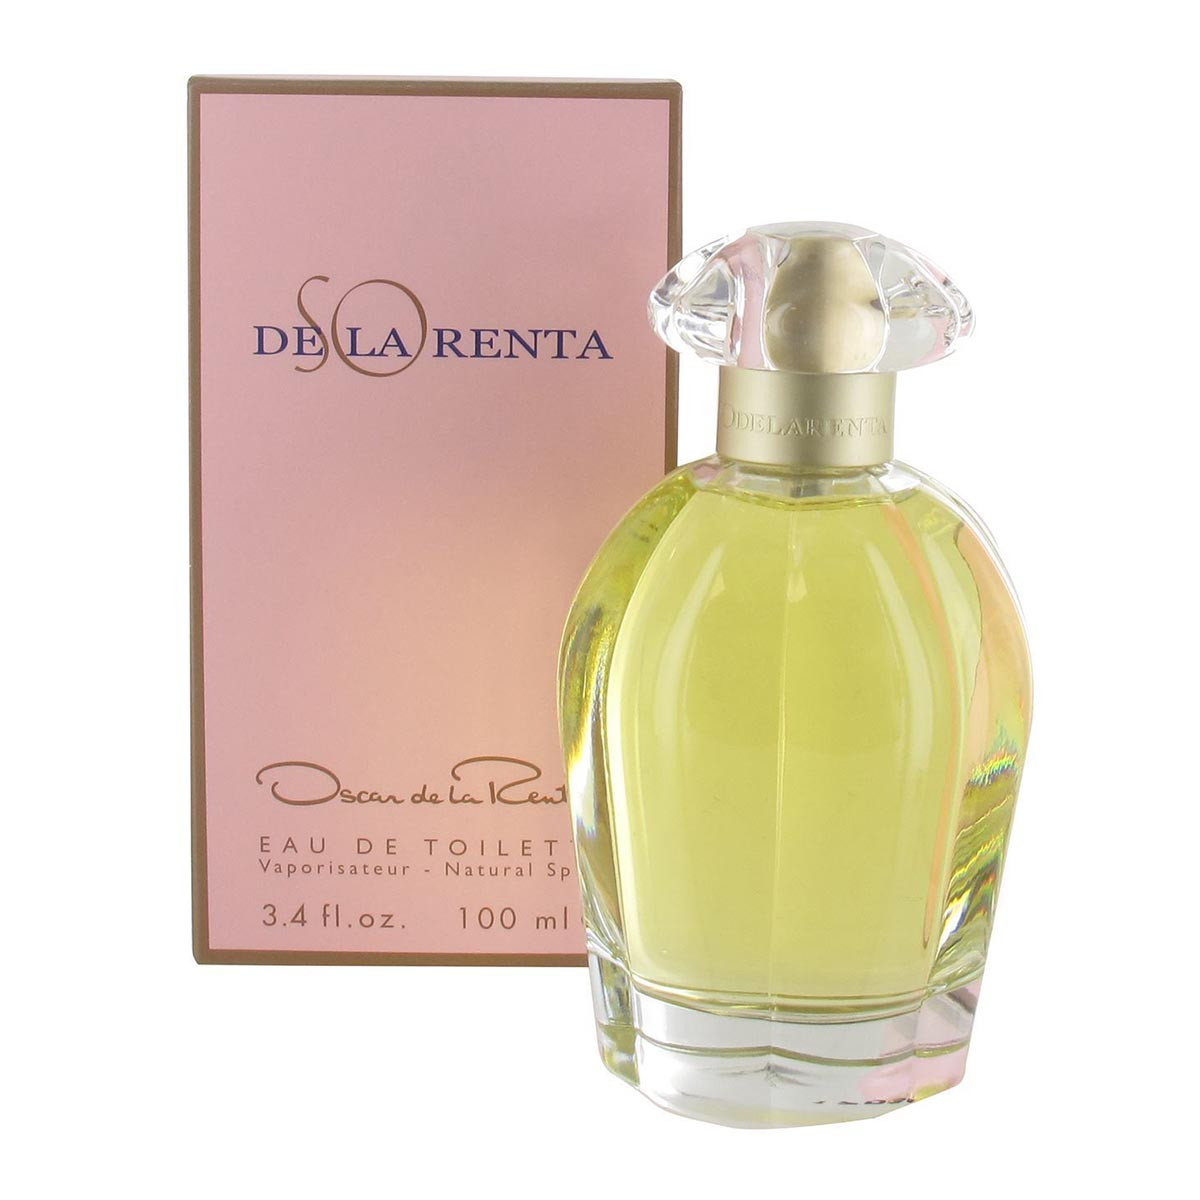 Oscar de la renta so eau de toillette 100ml vaporizador